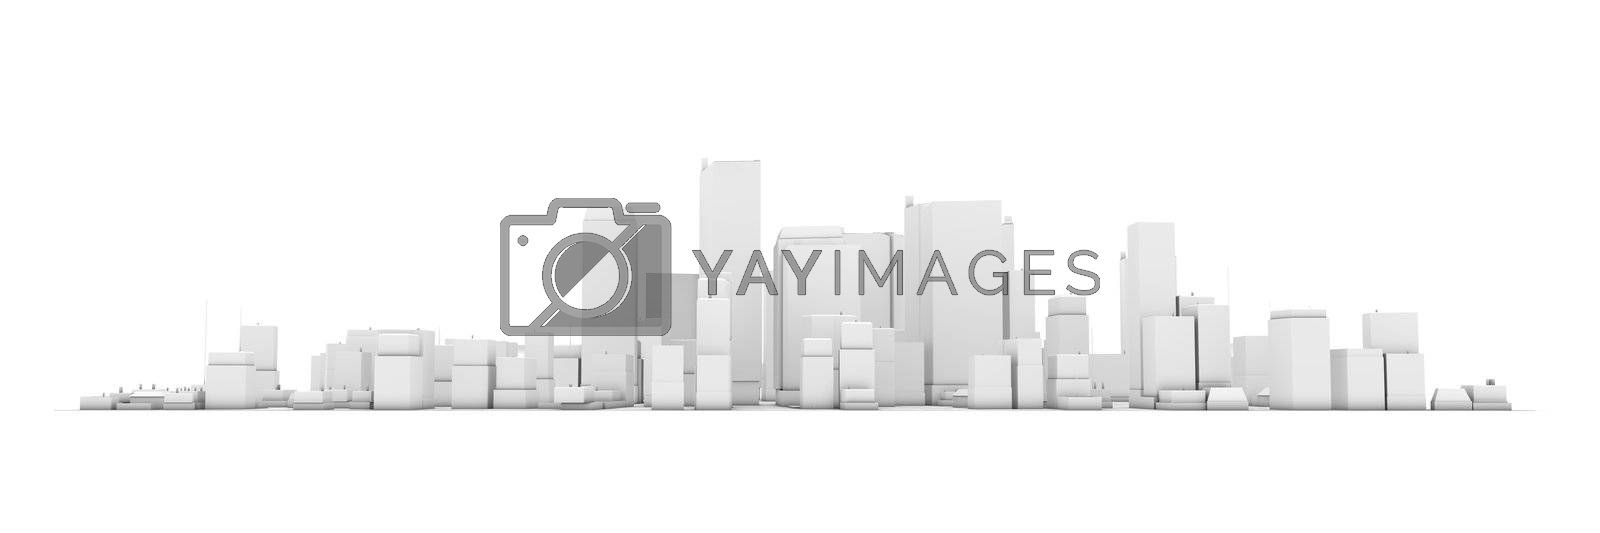 Royalty free image of Wide Cityscape Model 3D - White City White Background by PixBox